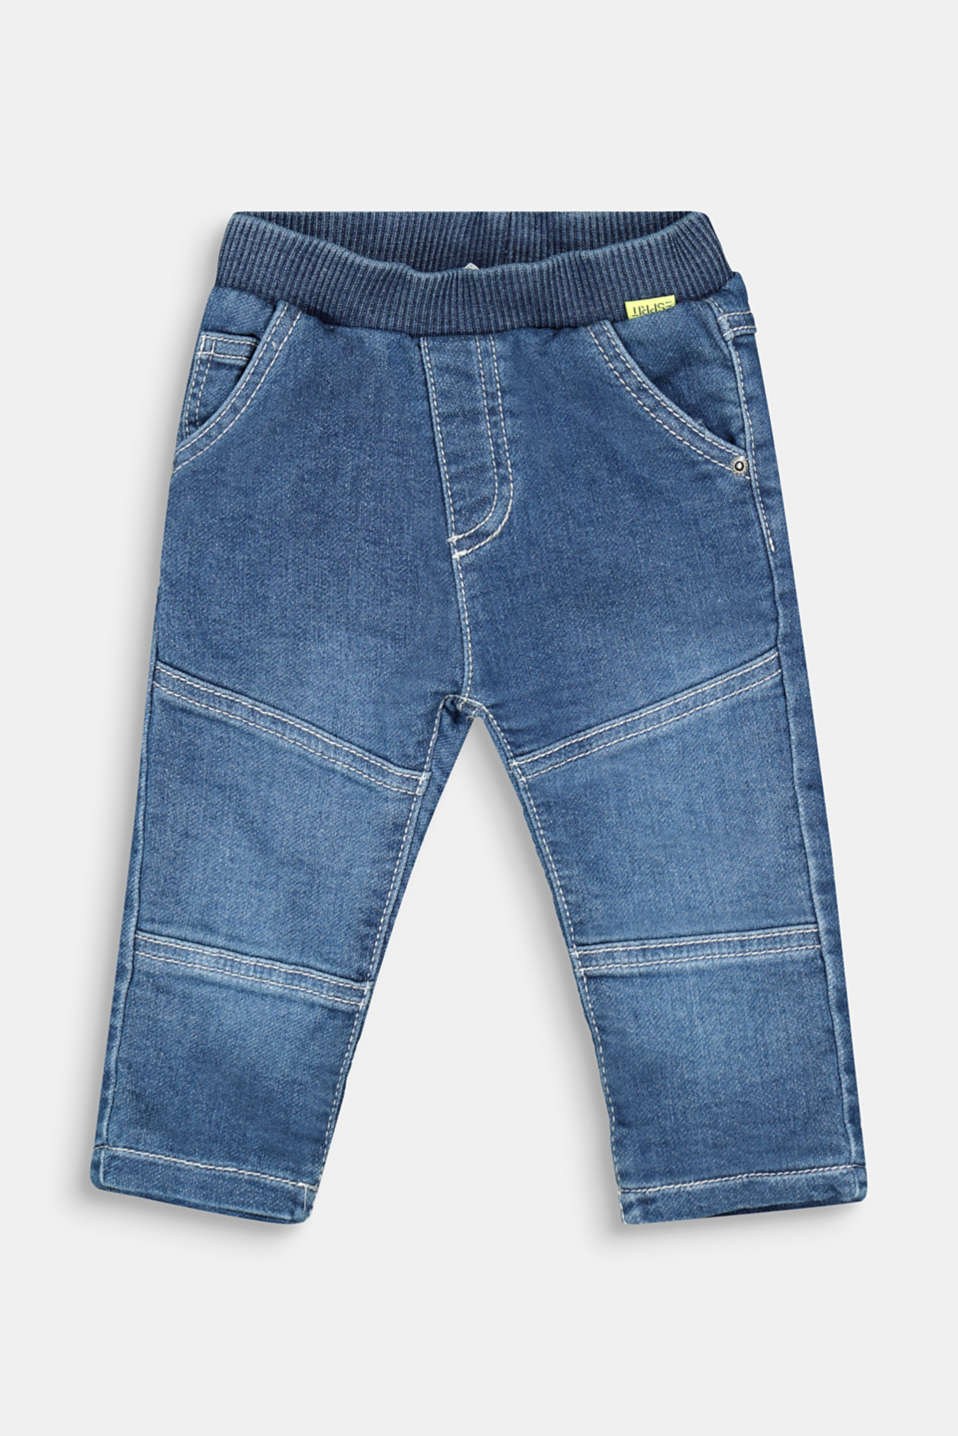 Esprit - Slip-on jeans with jersey lining